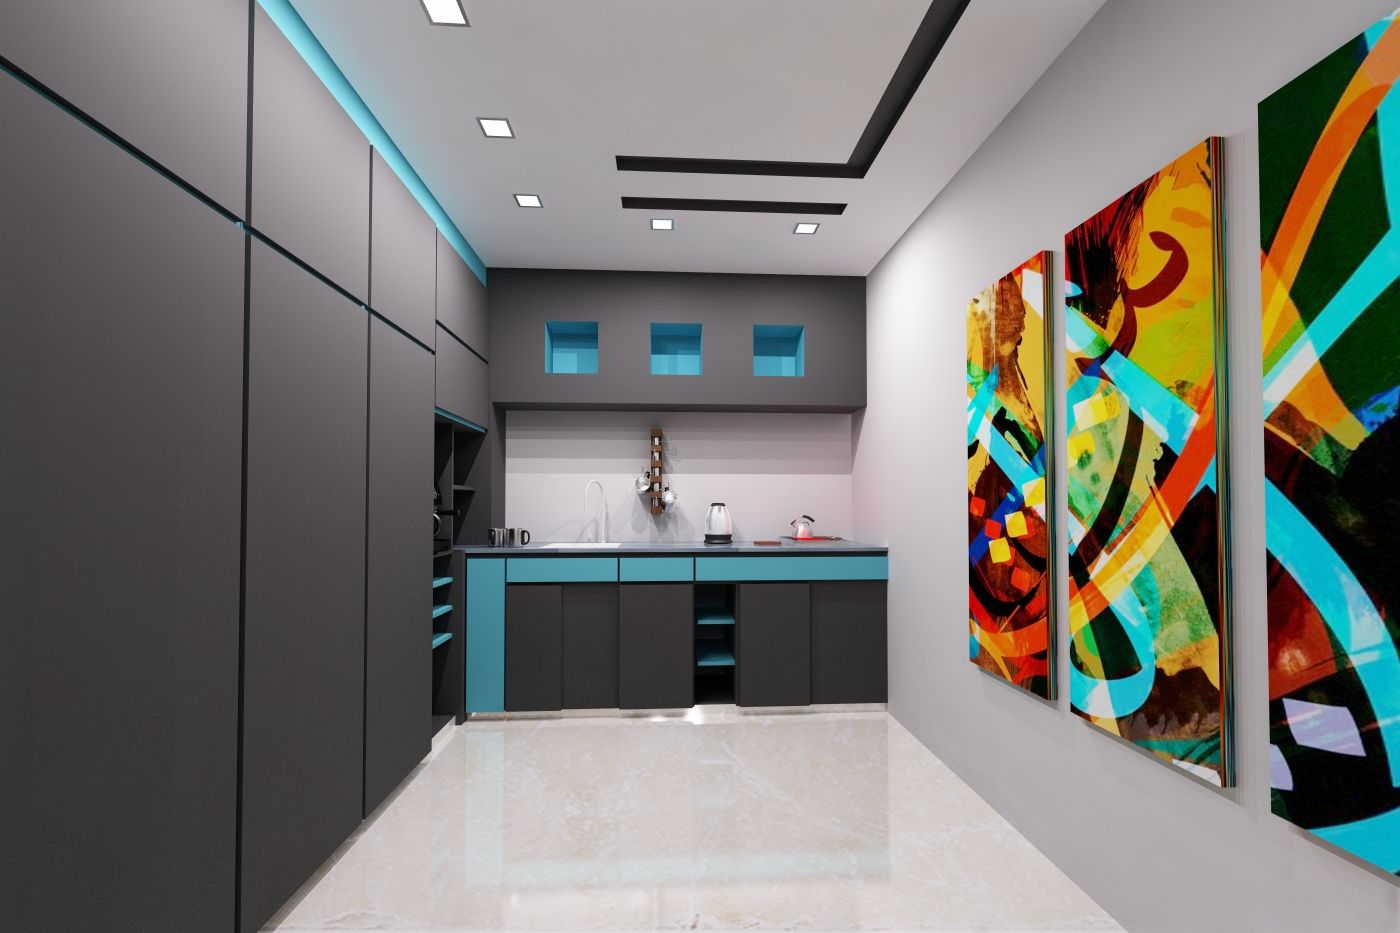 Al Arab Newspaper In Cairo Interior Design Kitchen By Remal Architects Architect